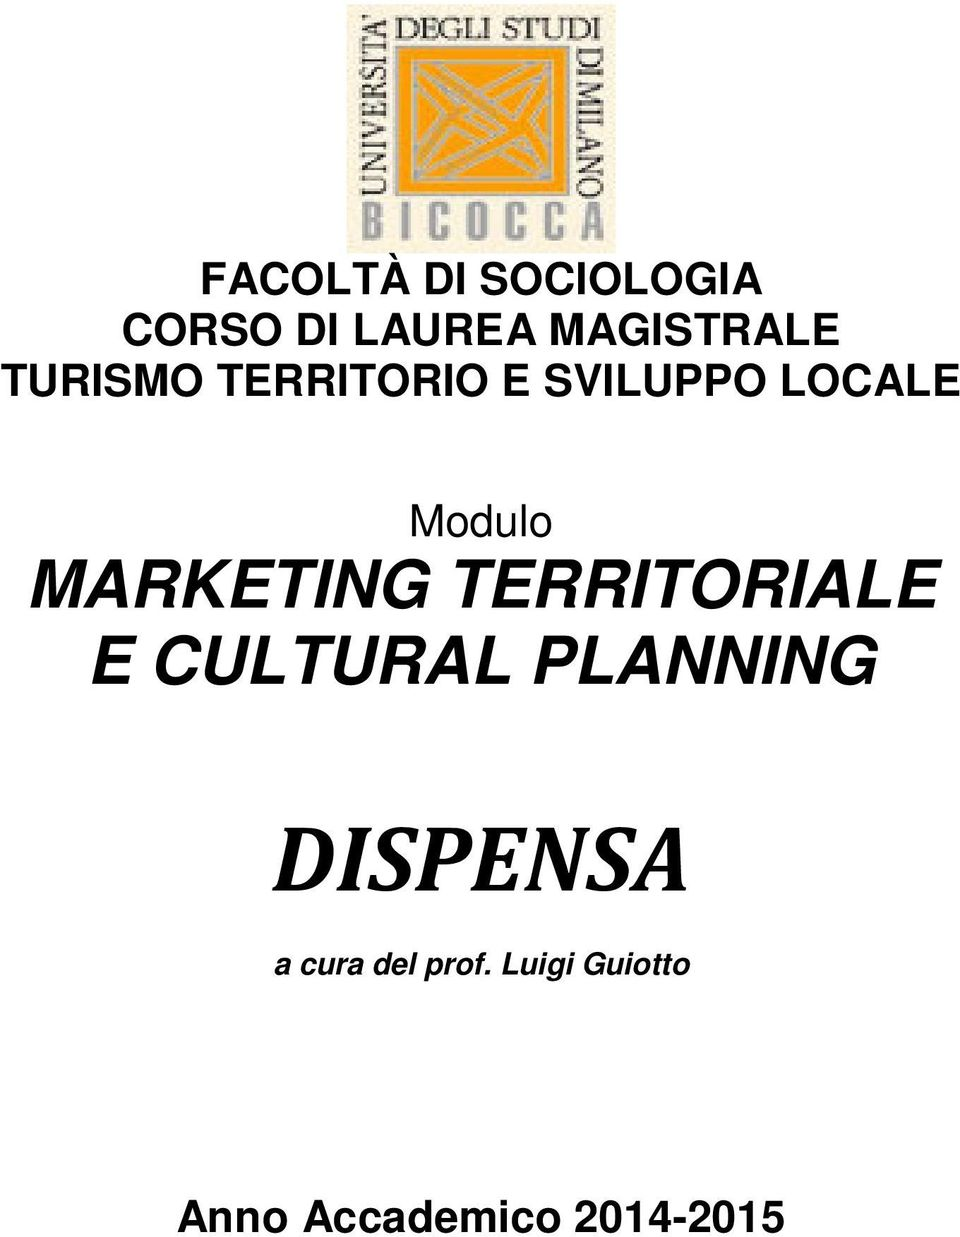 MARKETING TERRITORIALE E CULTURAL PLANNING